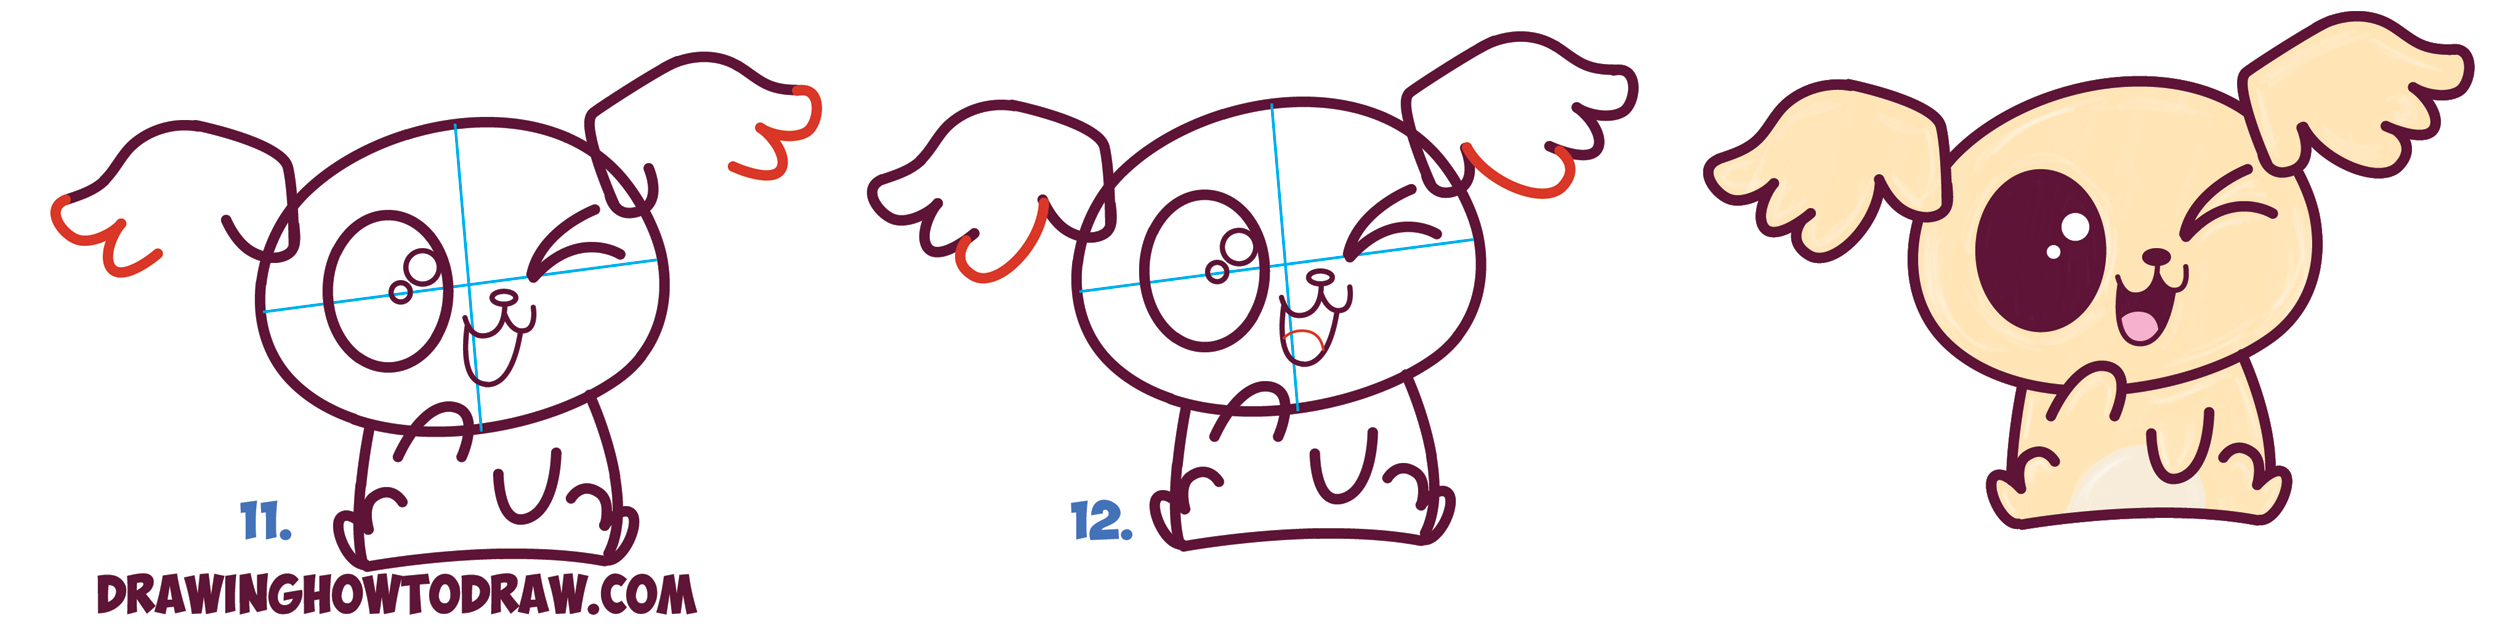 How To Draw Cute Kawaii Chibi Puppy Dogs With Easy Step By Step